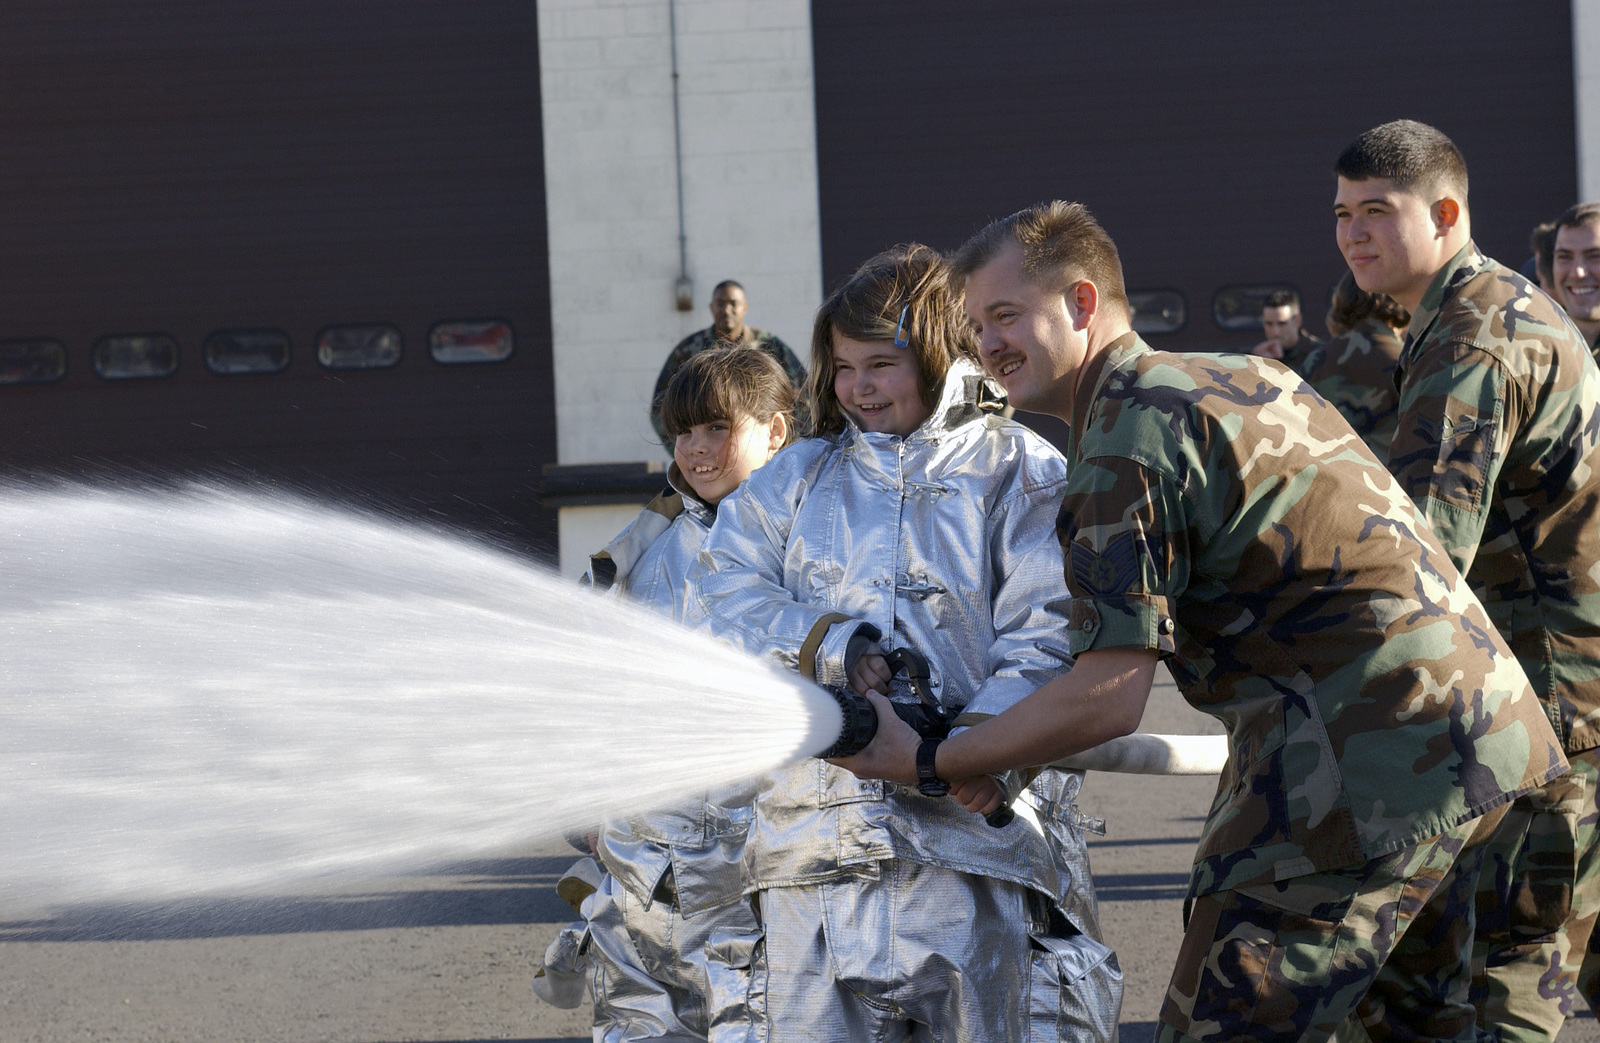 US Air Force (USAF) Technical Sergeant (TSGT) Coben D. Scott, 100th Civil Engineer Squadron (CES), Royal Air Force (RAF) Mildenhall, United Kingdom (UK), gives 10-year-old Olivia Grosvenor training on the fire hose as part of certifying her to be a firefighter during the Pilot for a Day program. Both Olivia and her sister Molly are dressed in JFIRE (Joint Firefighters Integrated Response Ensemble) suits. The program provides children diagnosed with serious or chronic illnesses to fulfill their aviation dreams